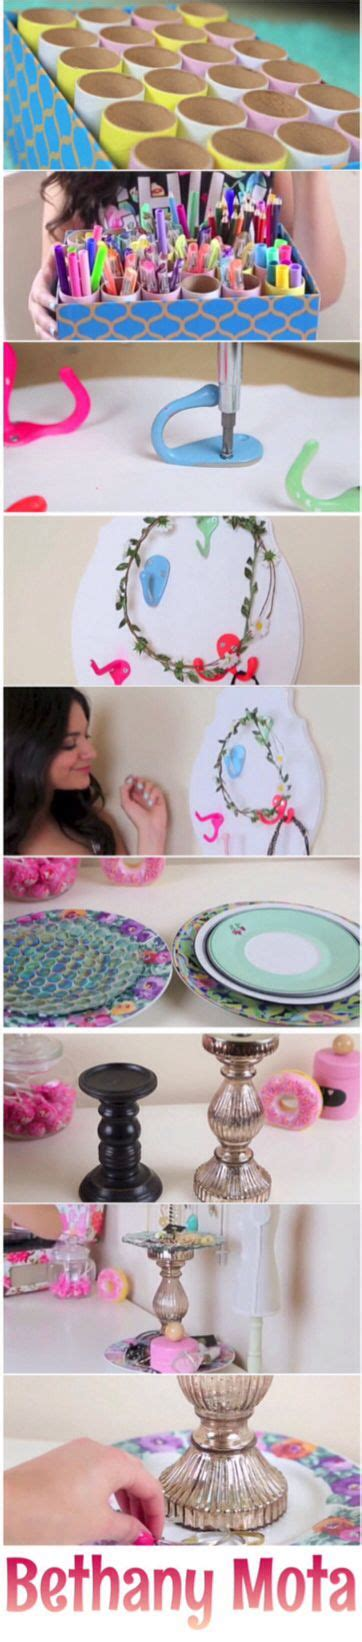 bethany mota diy projects bethany mota s cleaning go check it out on